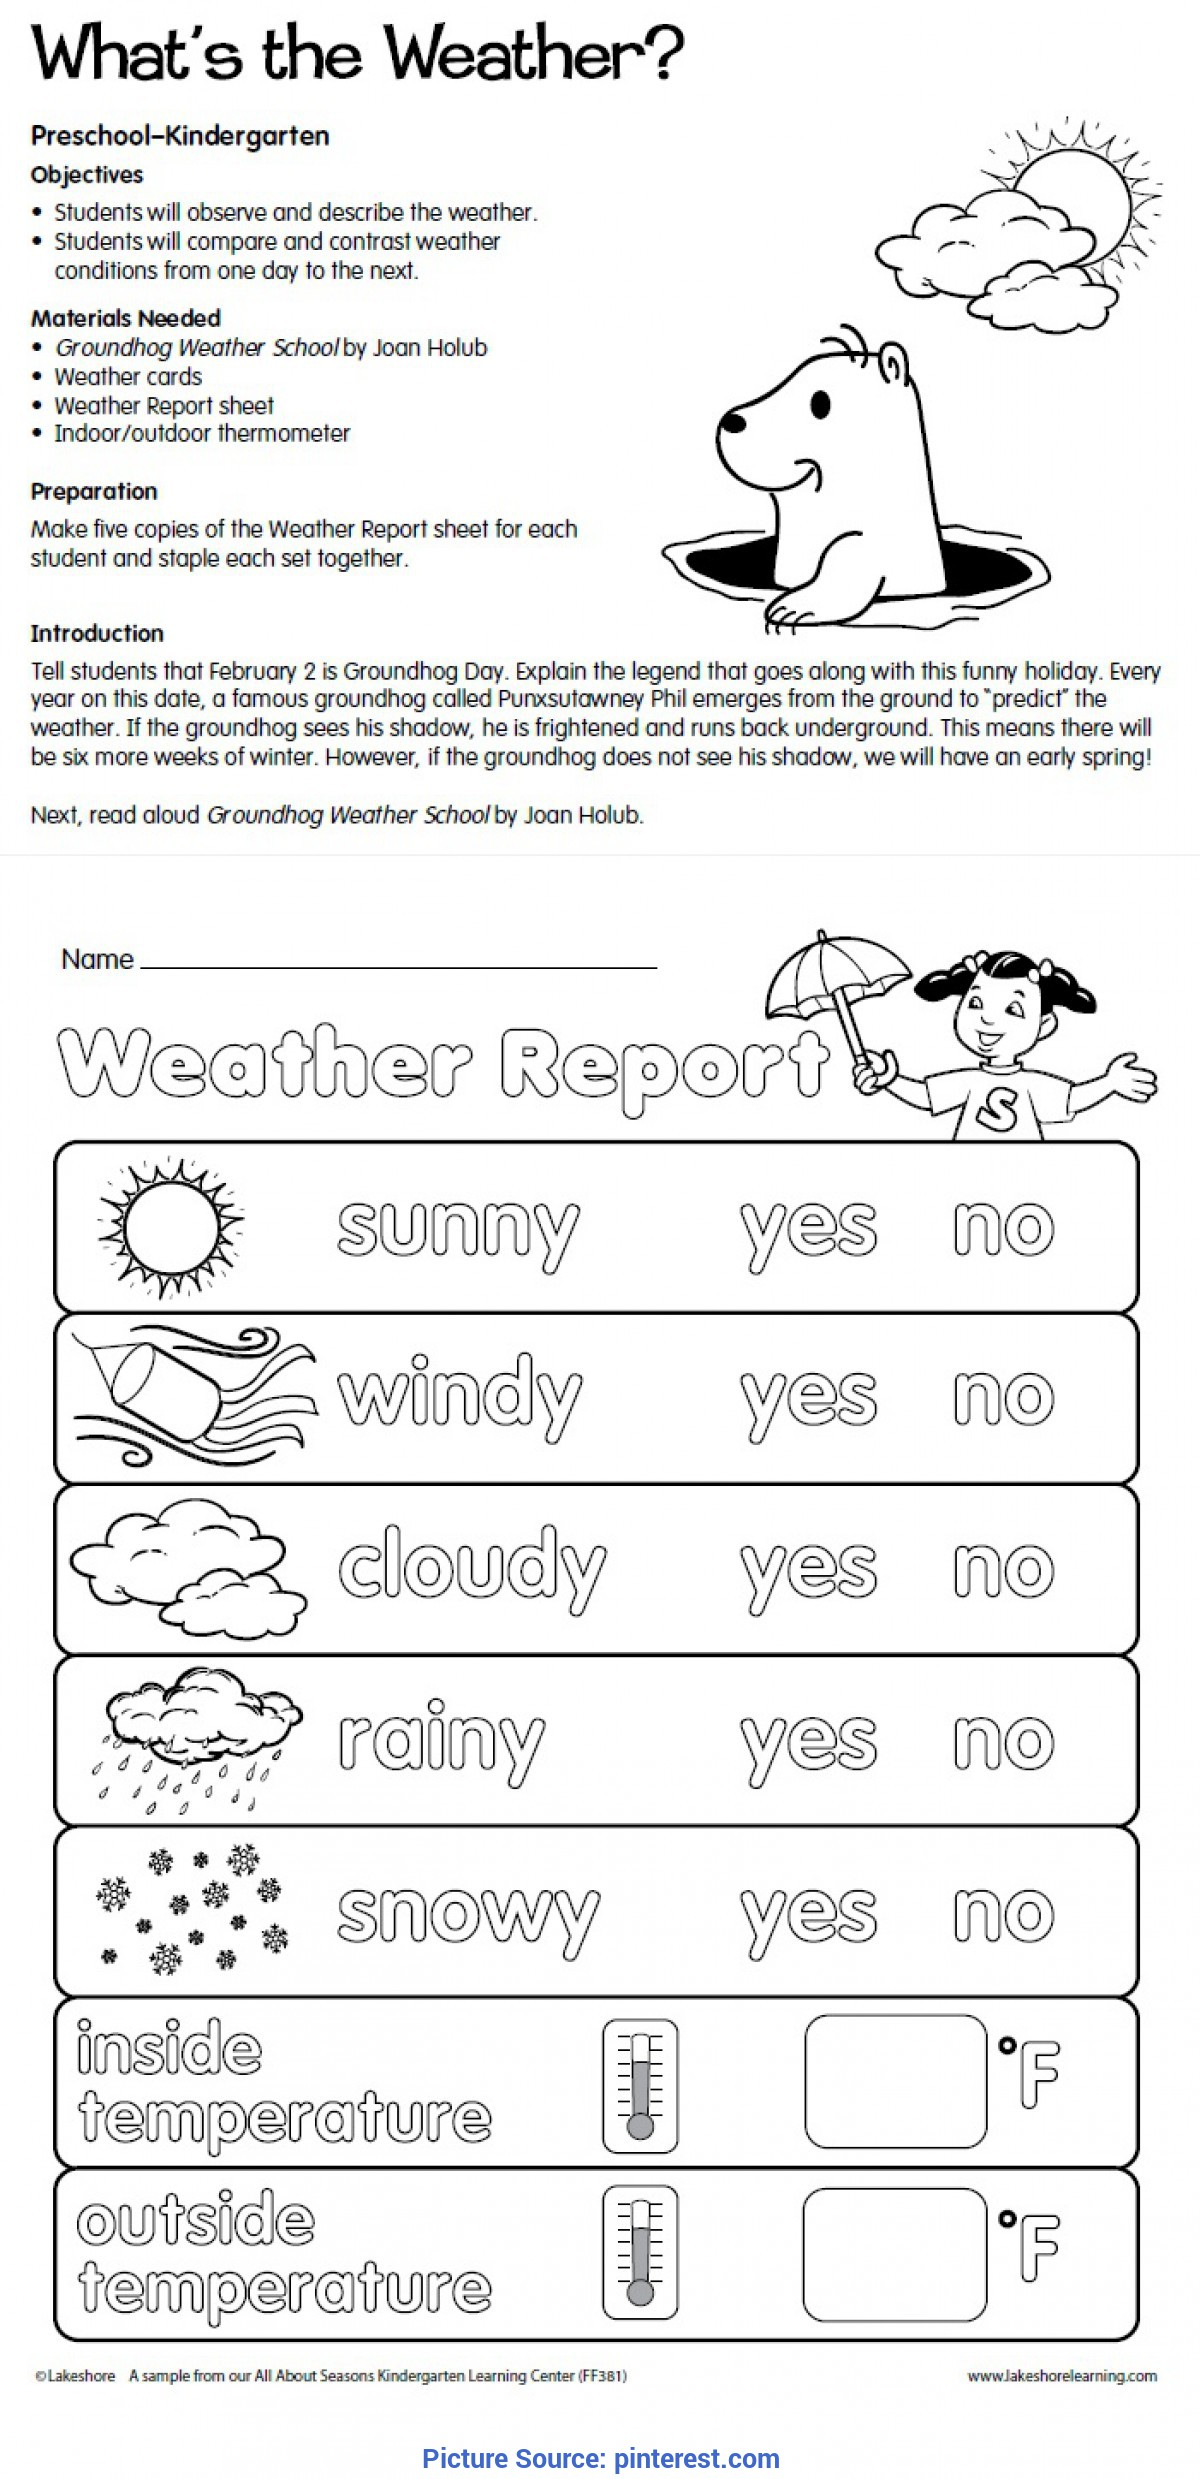 Climate Worksheet Middle School